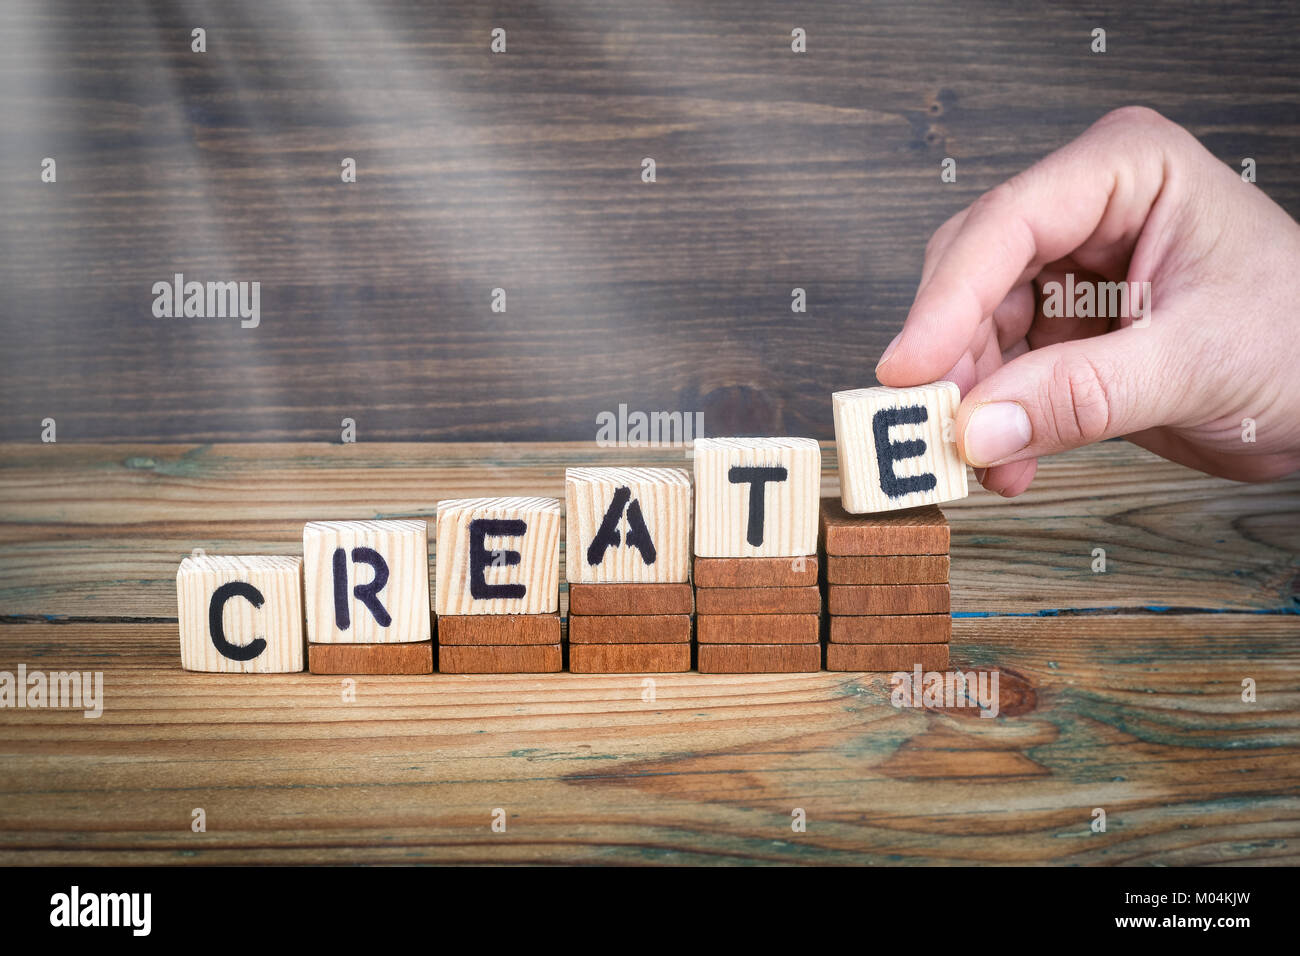 create. Wooden letters on the office desk, informative and communication background - Stock Image